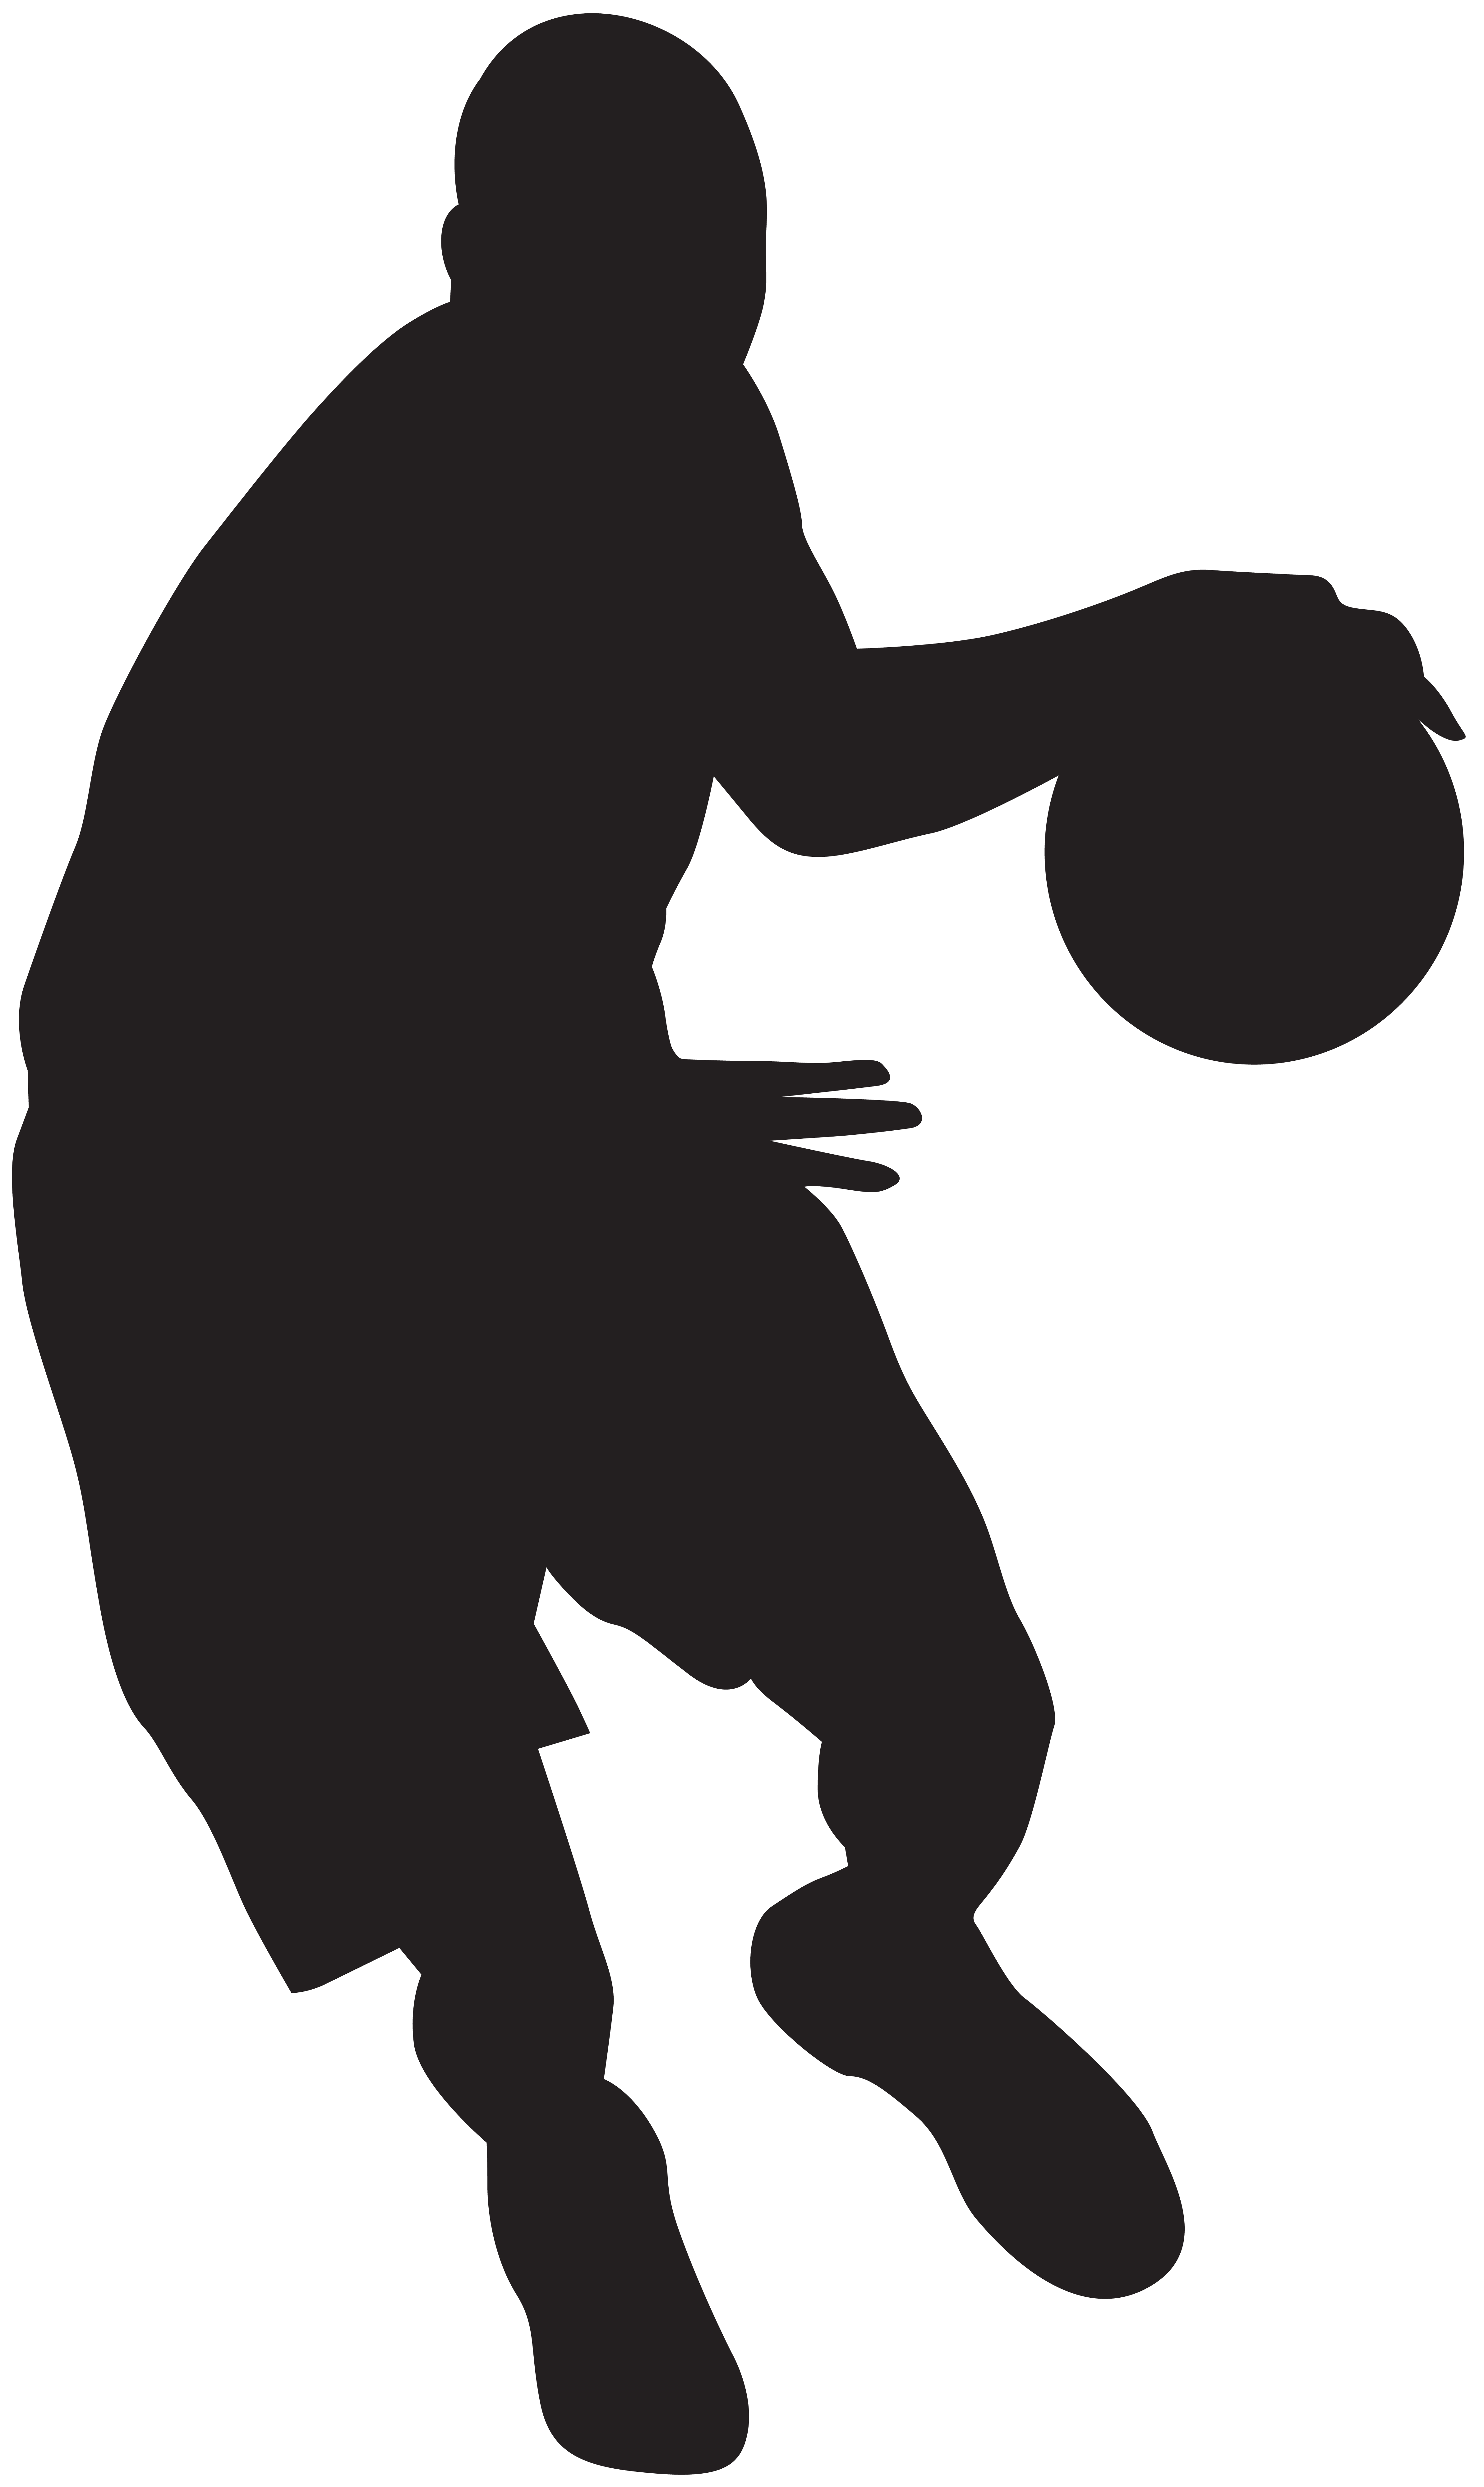 Clipart boy basketball player. Silhouette at getdrawings com